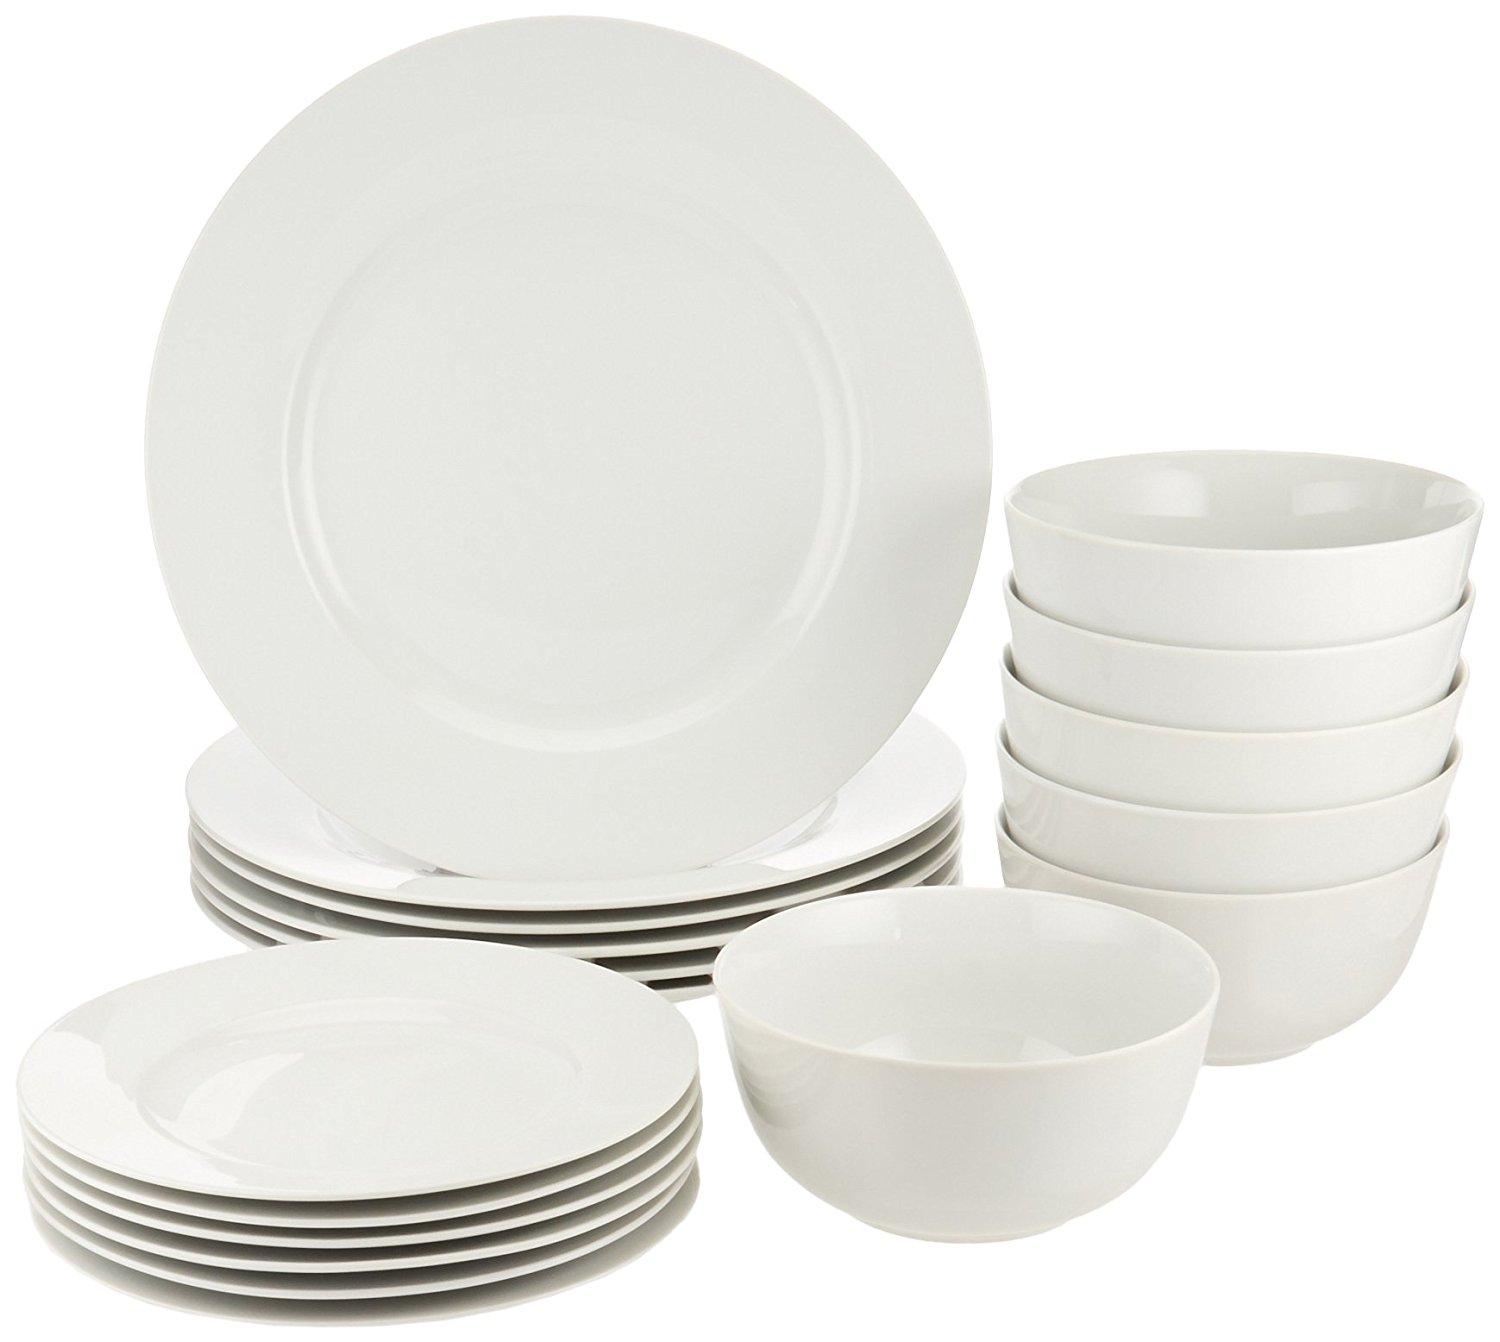 An 18 Piece Dinnerware Set